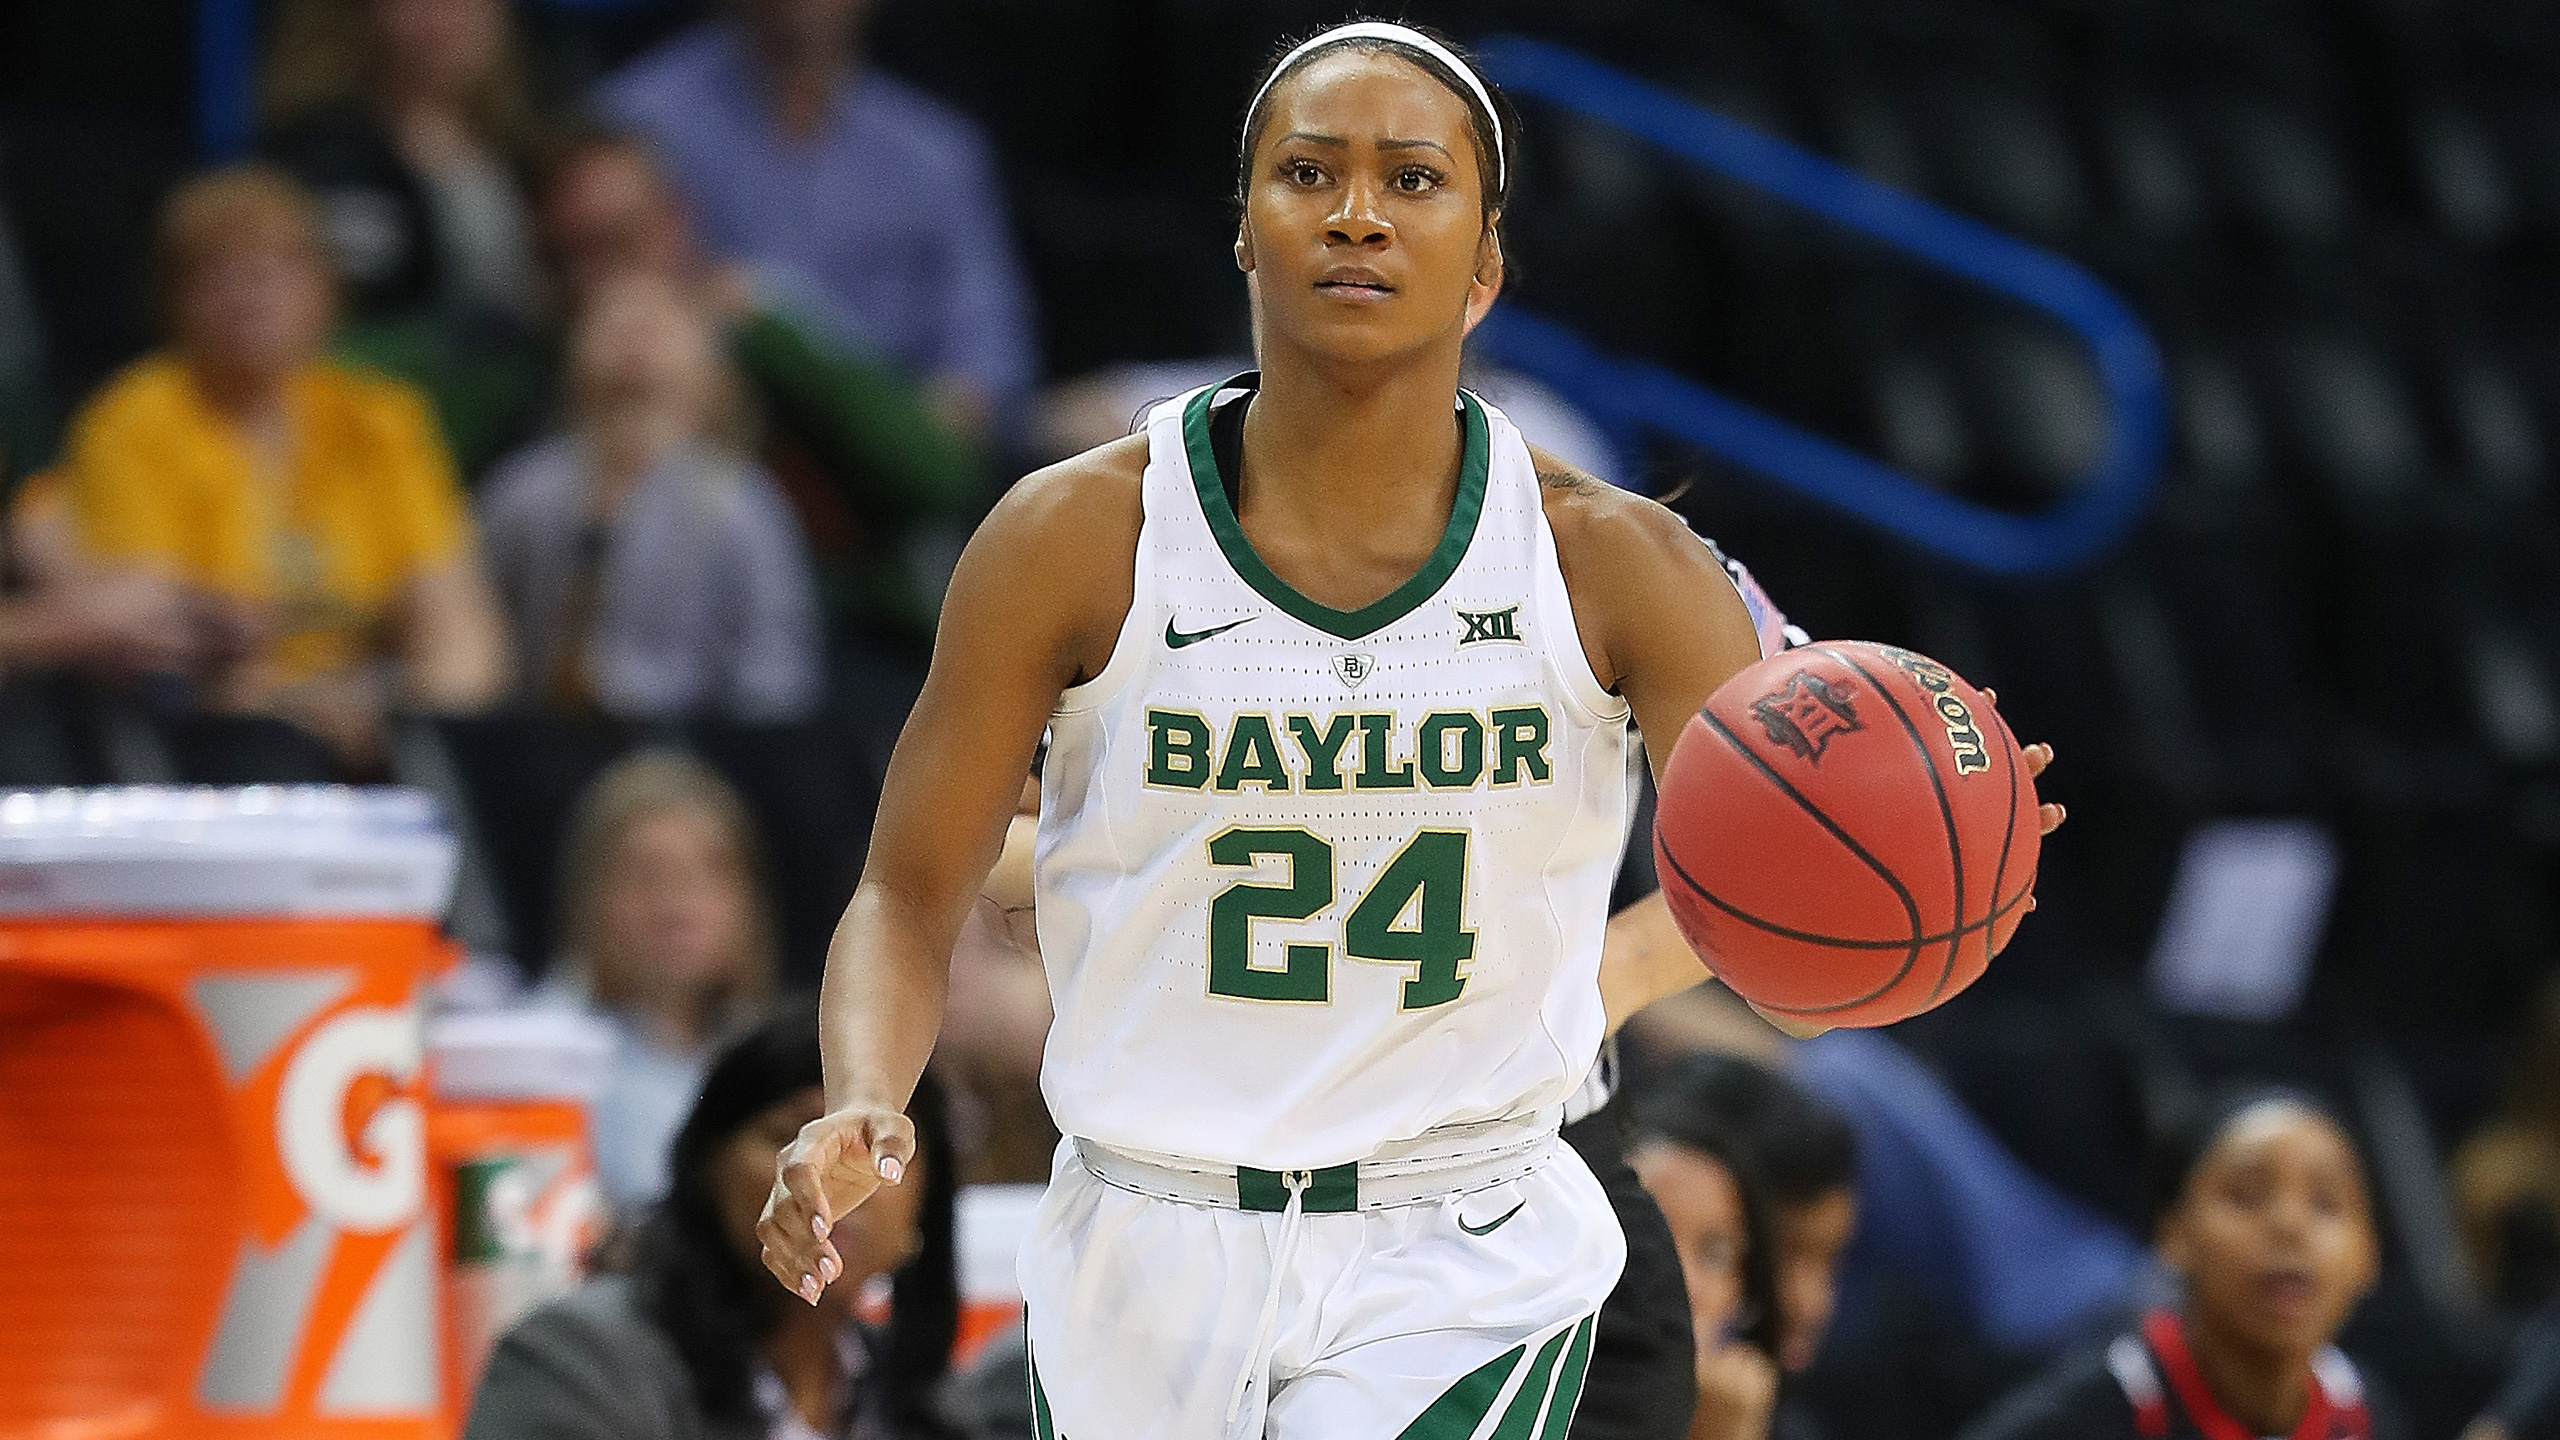 #16 Abilene Christian vs. #1 Baylor (First Round) (NCAA Women's Basketball Championship)